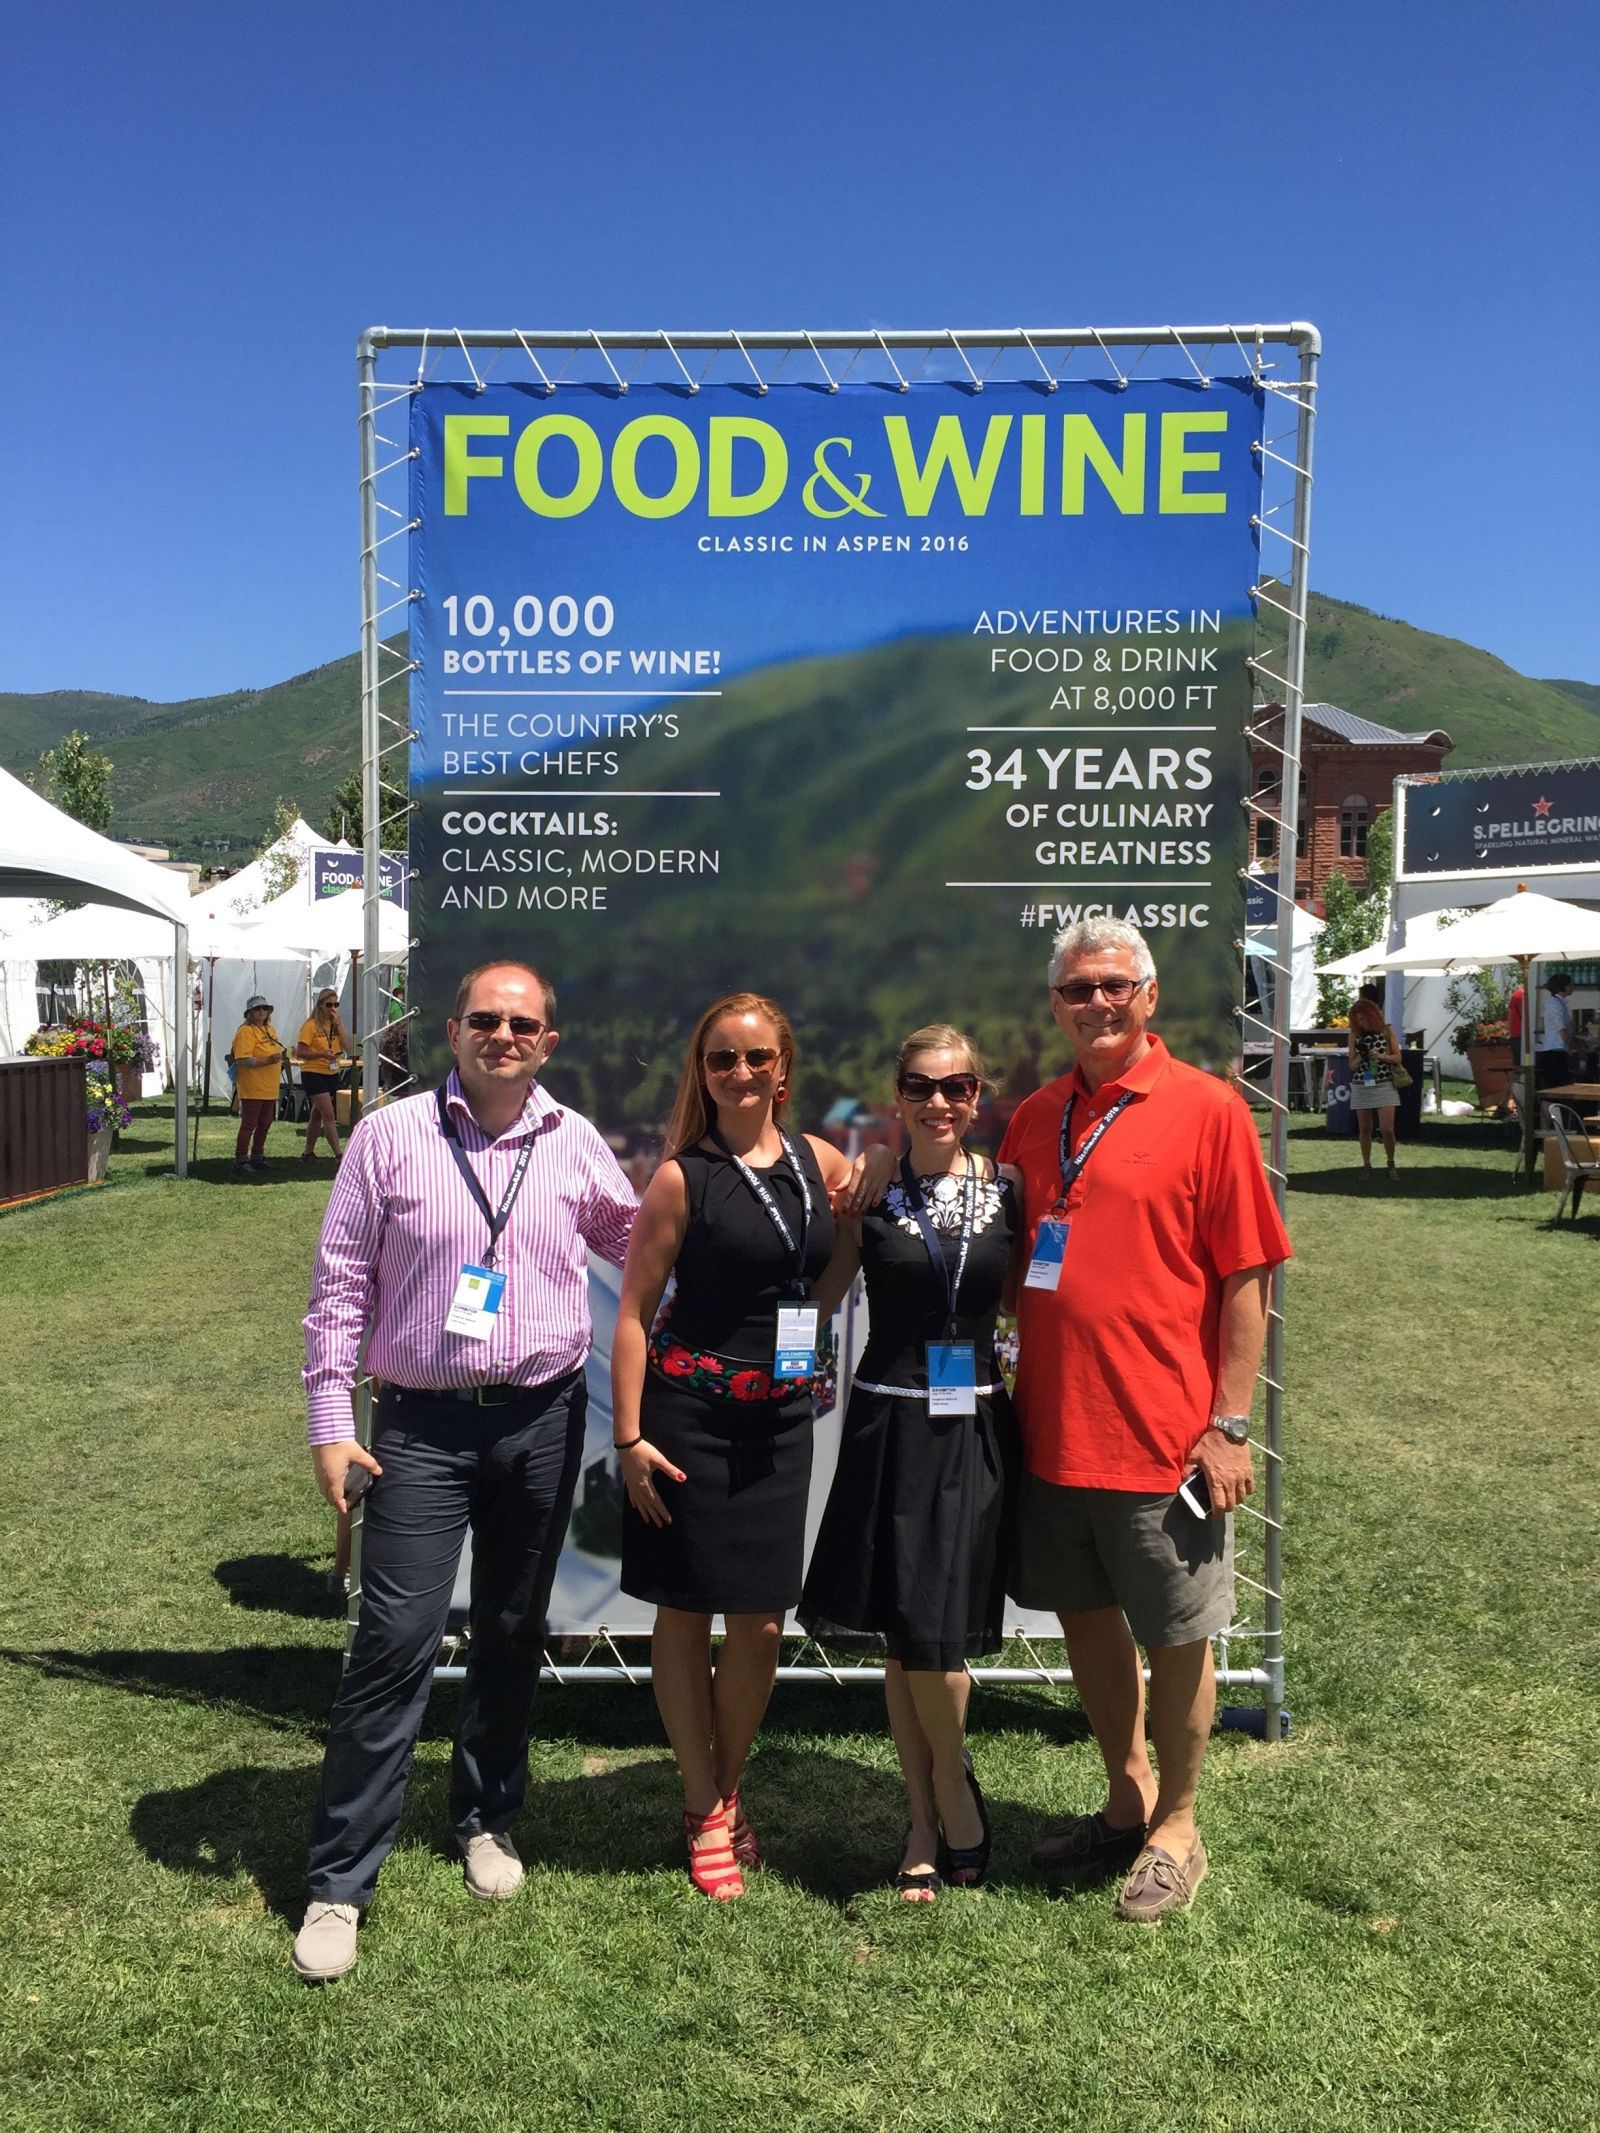 Aspen Food and Wine